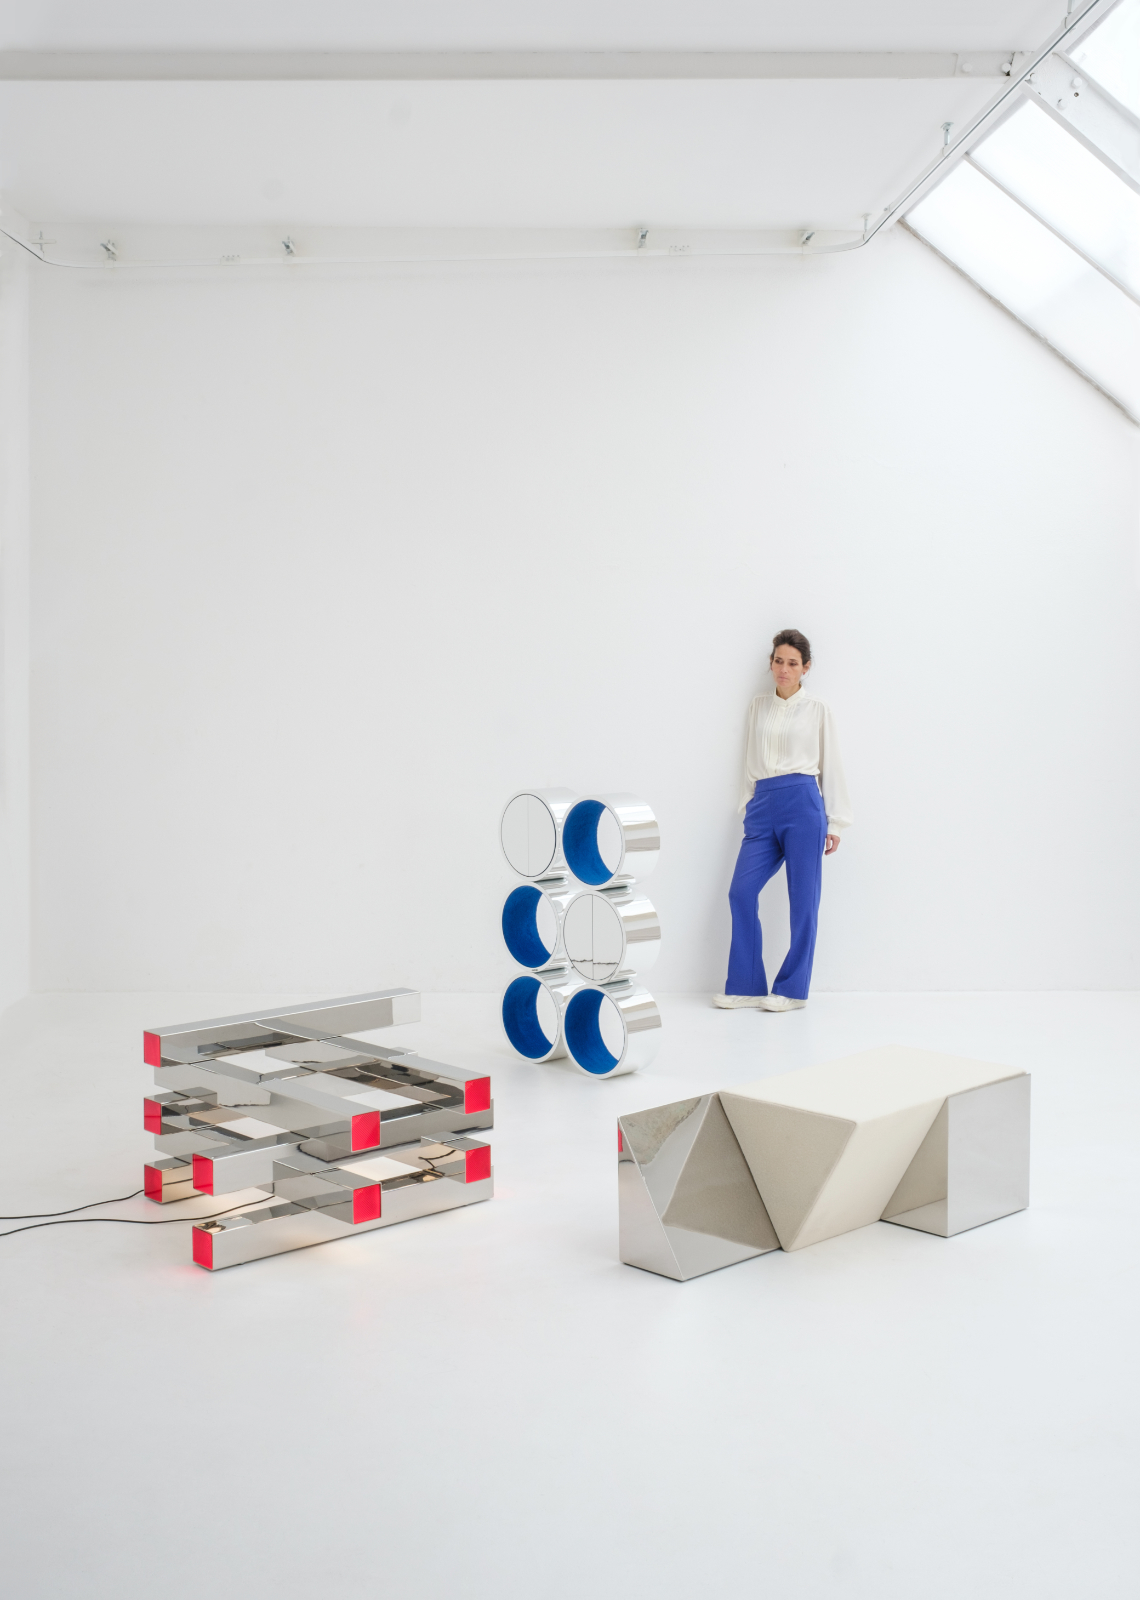 new collection of sculptural objects by nortstudio